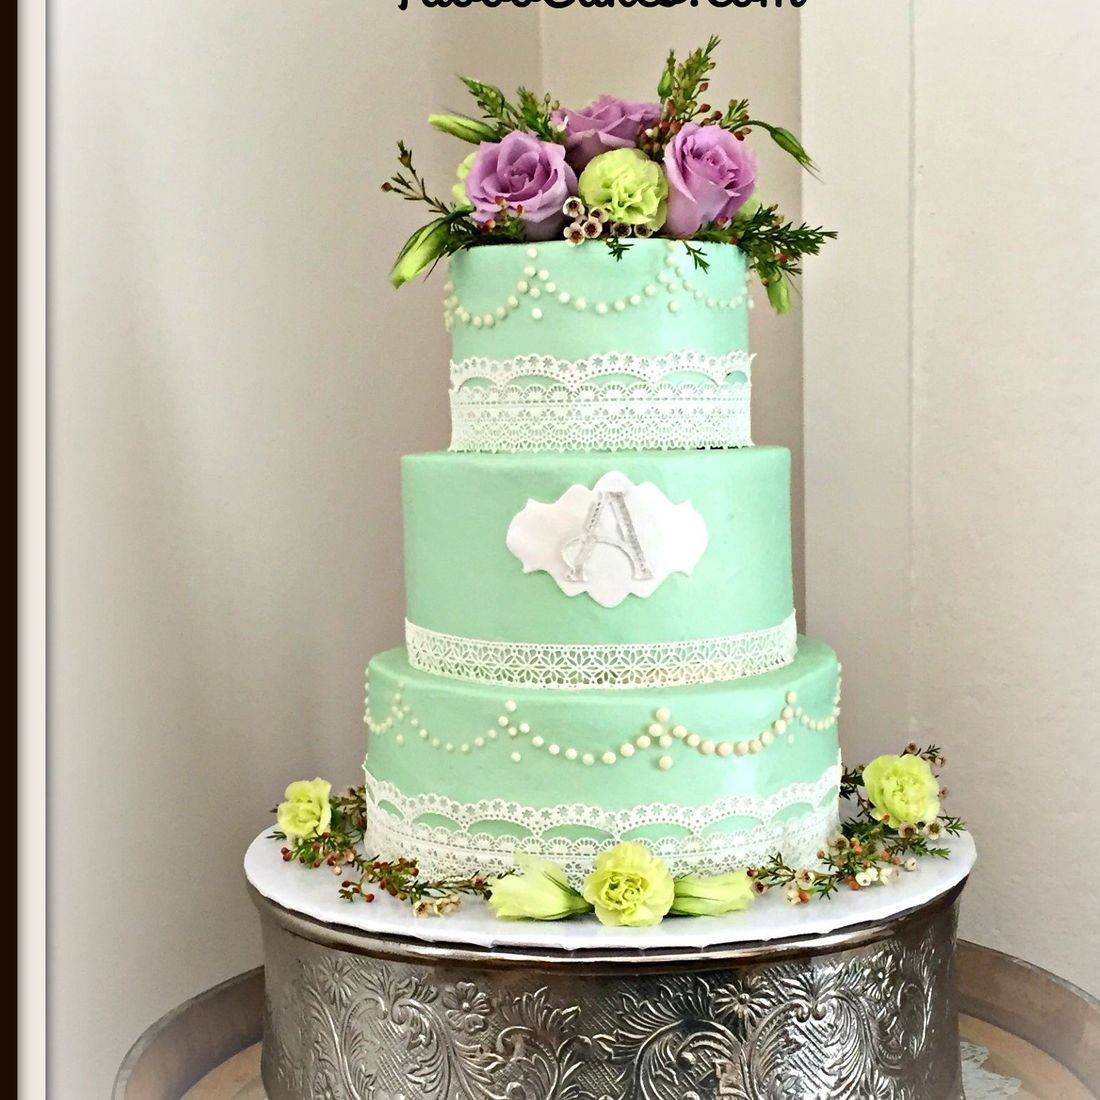 Buttercream Wedding Cake Tiffany Blue Lace southern Chic